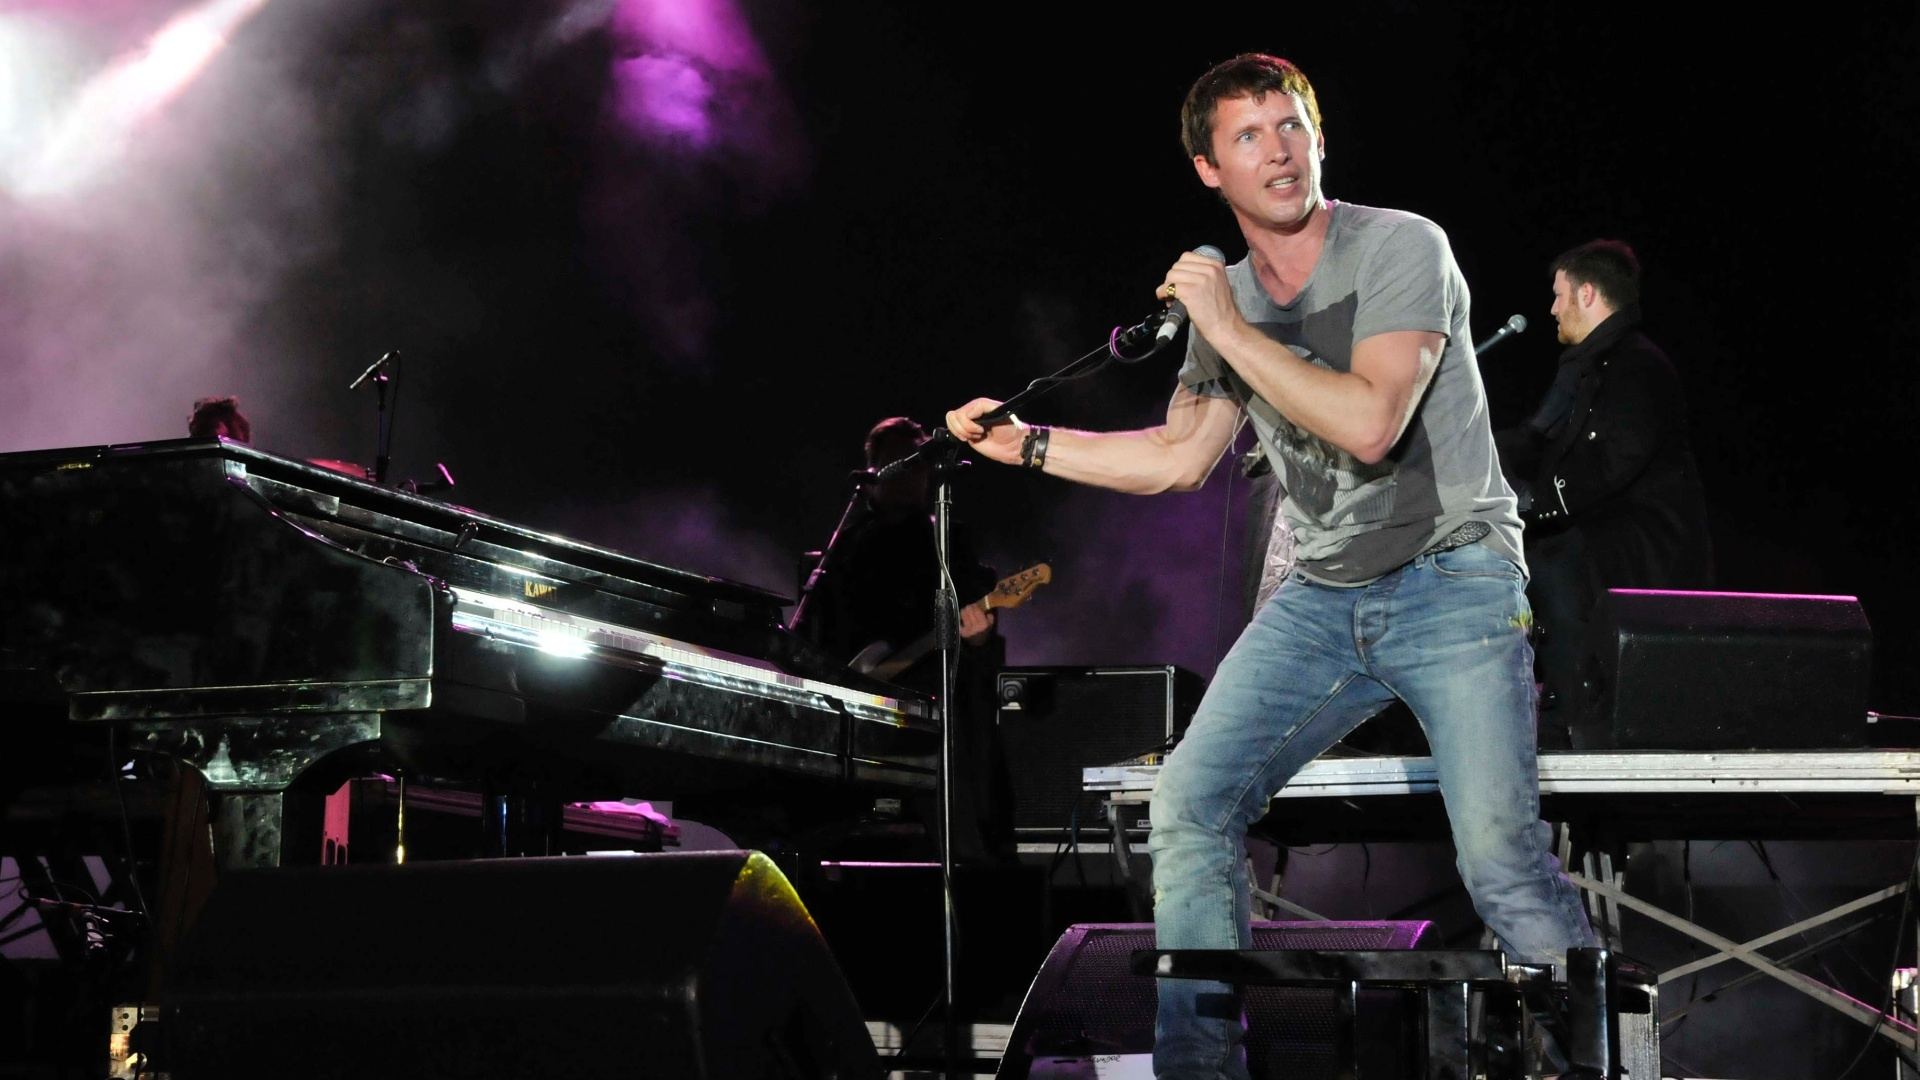 James Blunt se apresenta na primeira noite do Festival de Vero de Salvador (25/1/12)